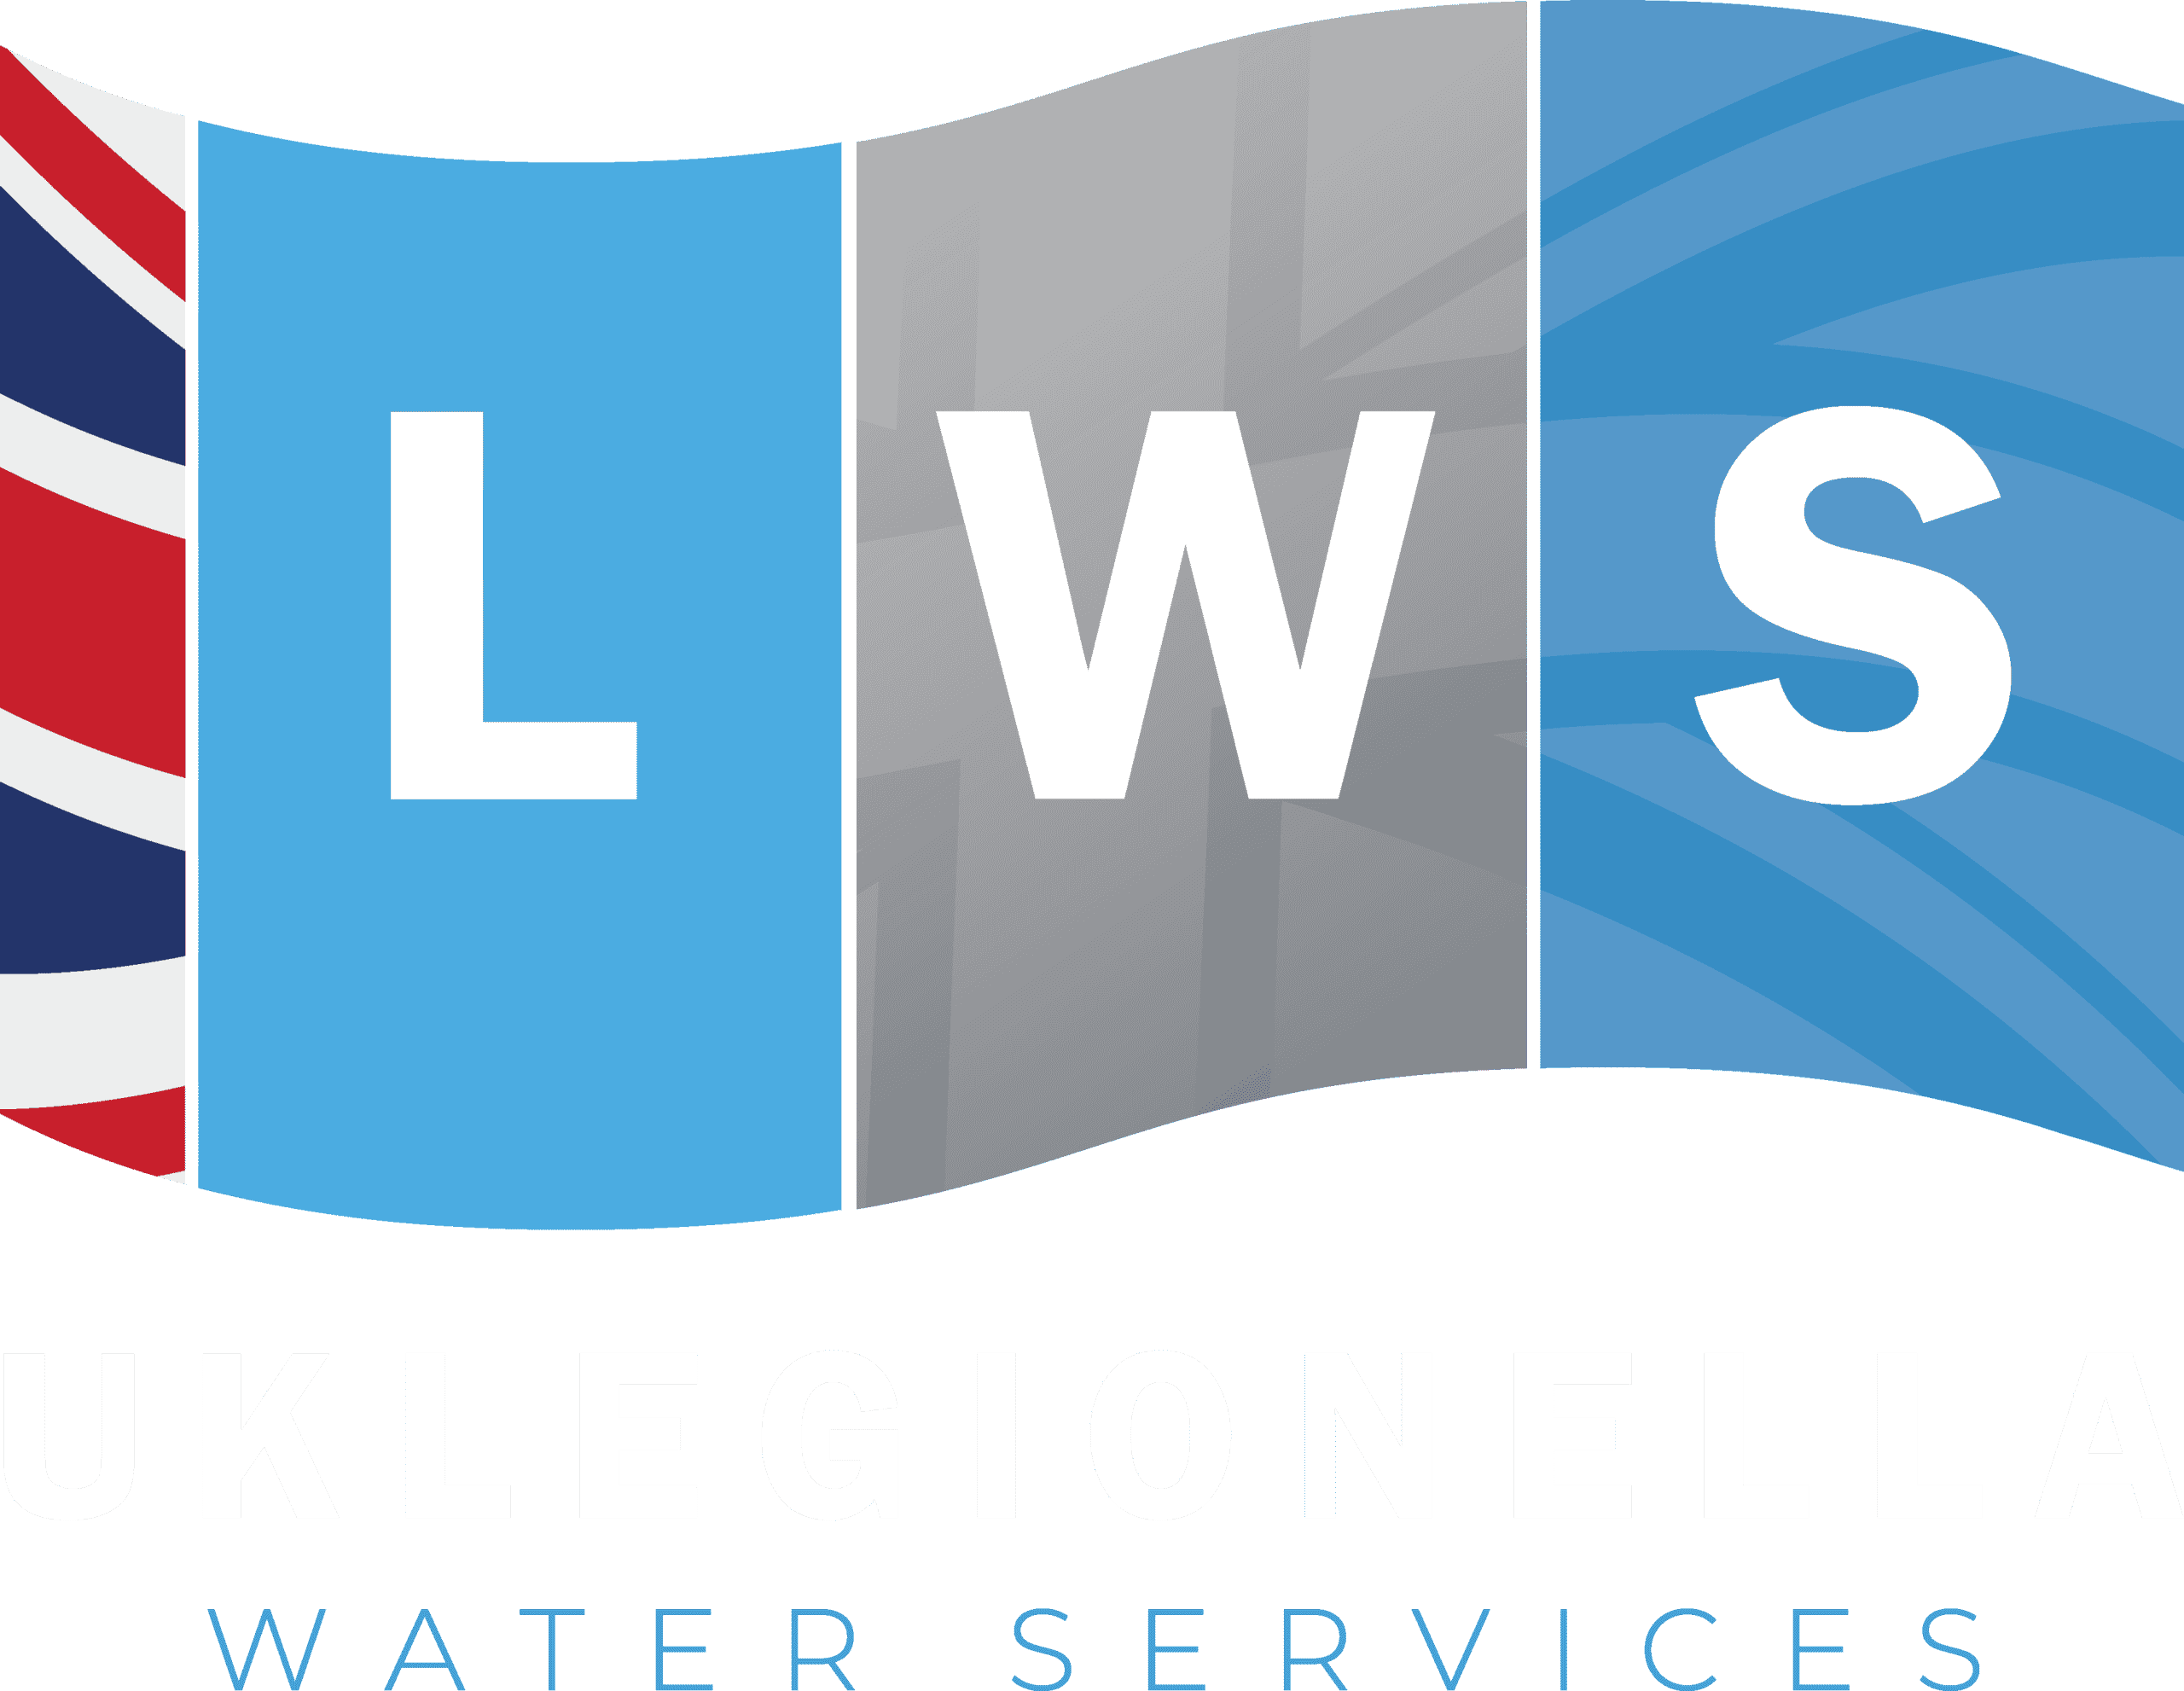 Legionella Water Services